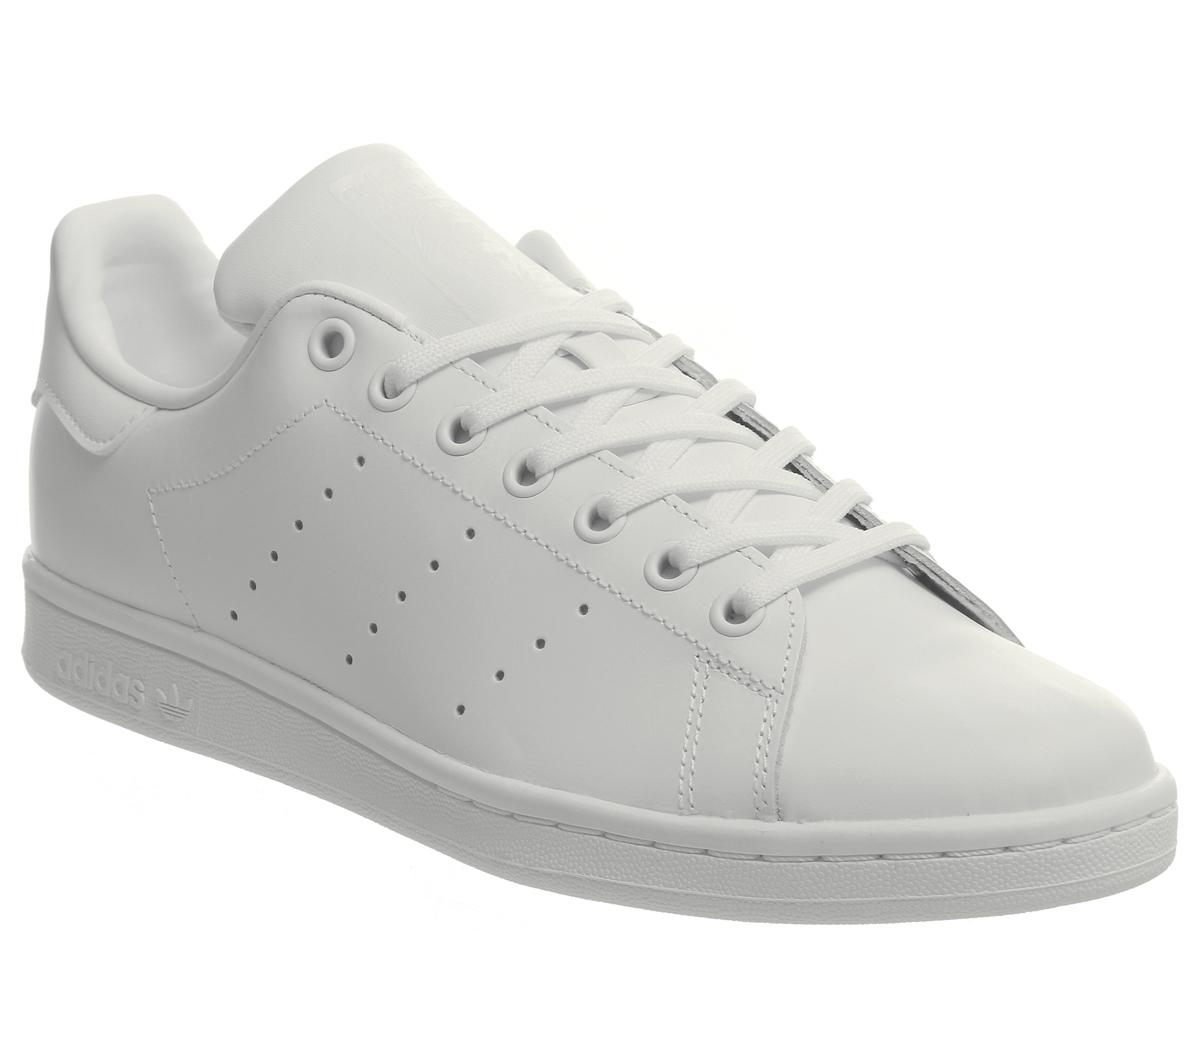 Return Of A Classic: These Triple White adidas Stan Smiths